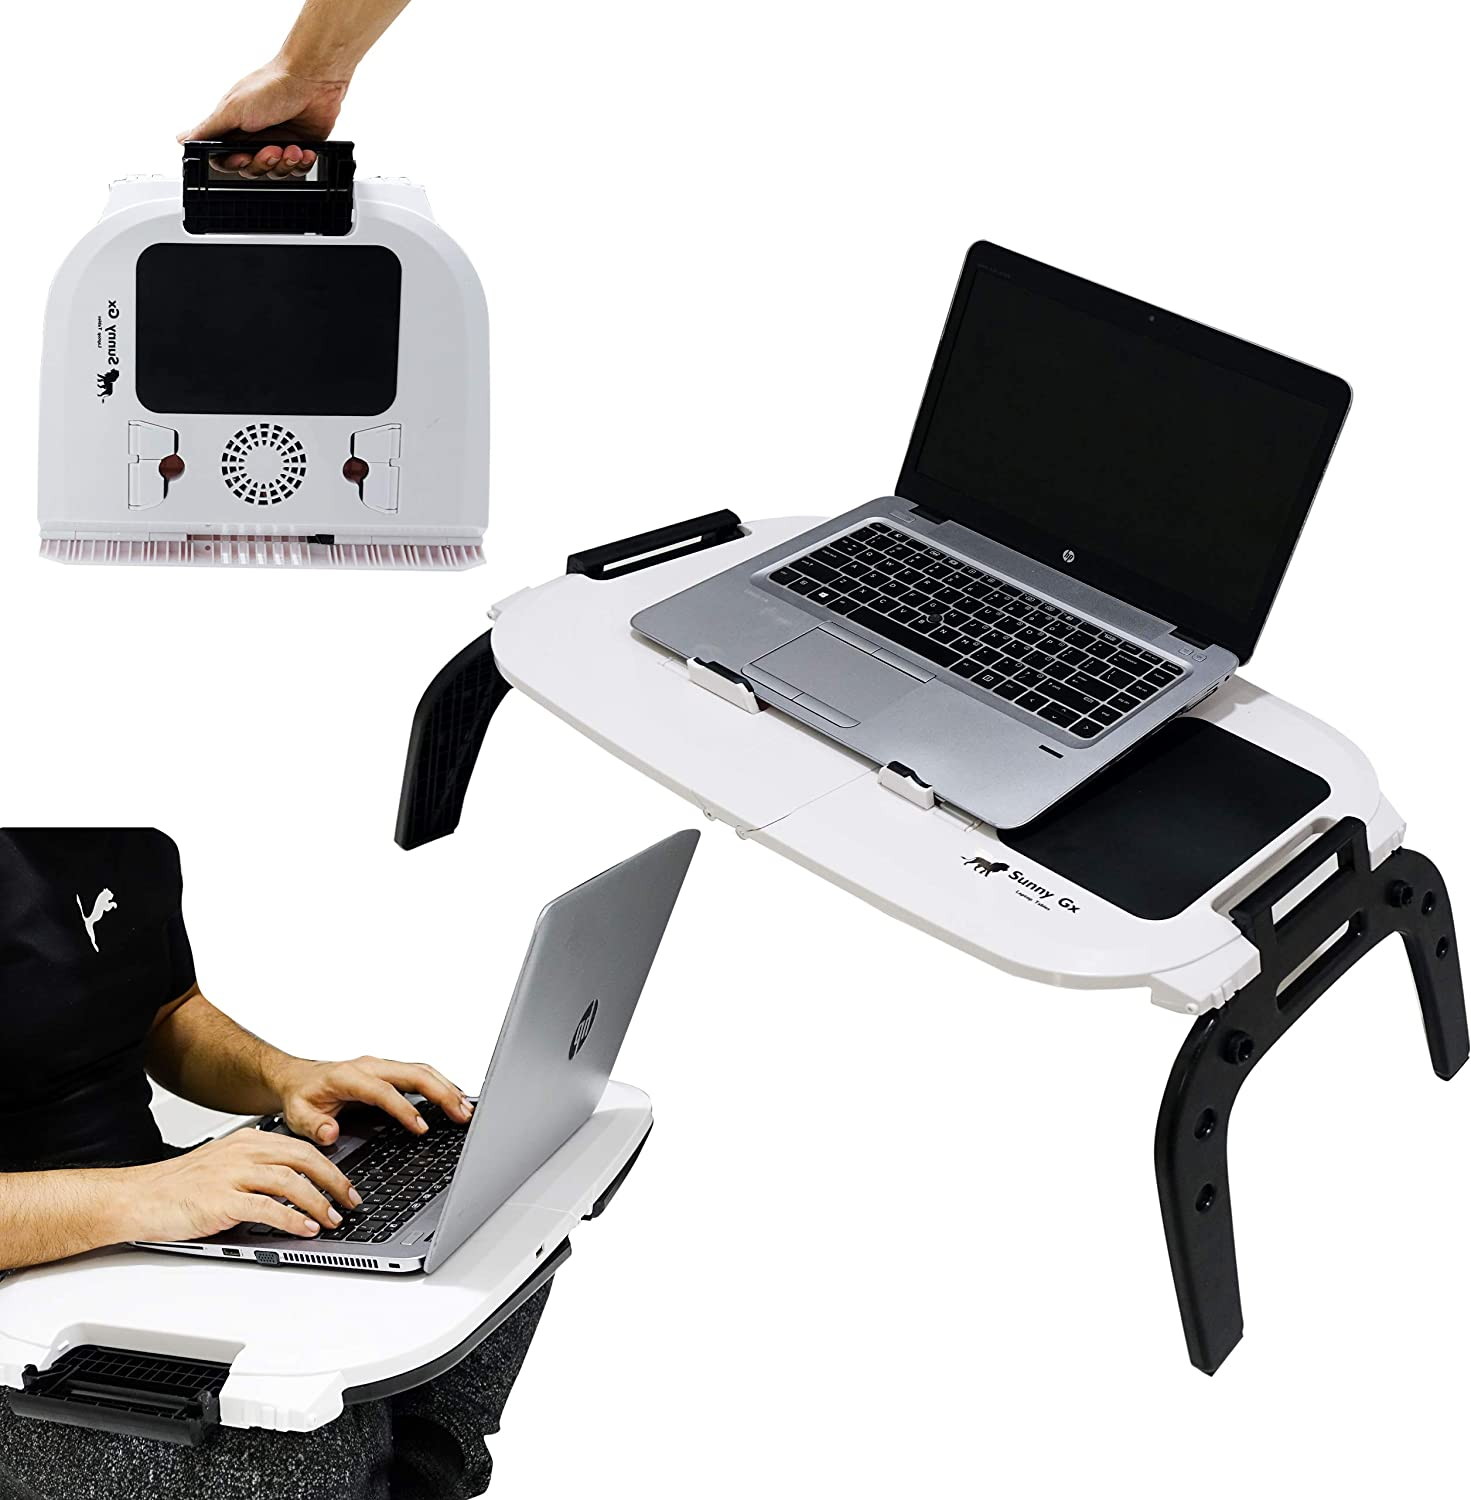 Sunny Gx Foldable Laptop Table - Multifunction Can Be used on Bed, Desk Stand, Table, Sofa, Couch Wood & Most Importantly On Lap, 2 Cooling Fans, Suitable Working, Writing, Reading, Eating (Off White)